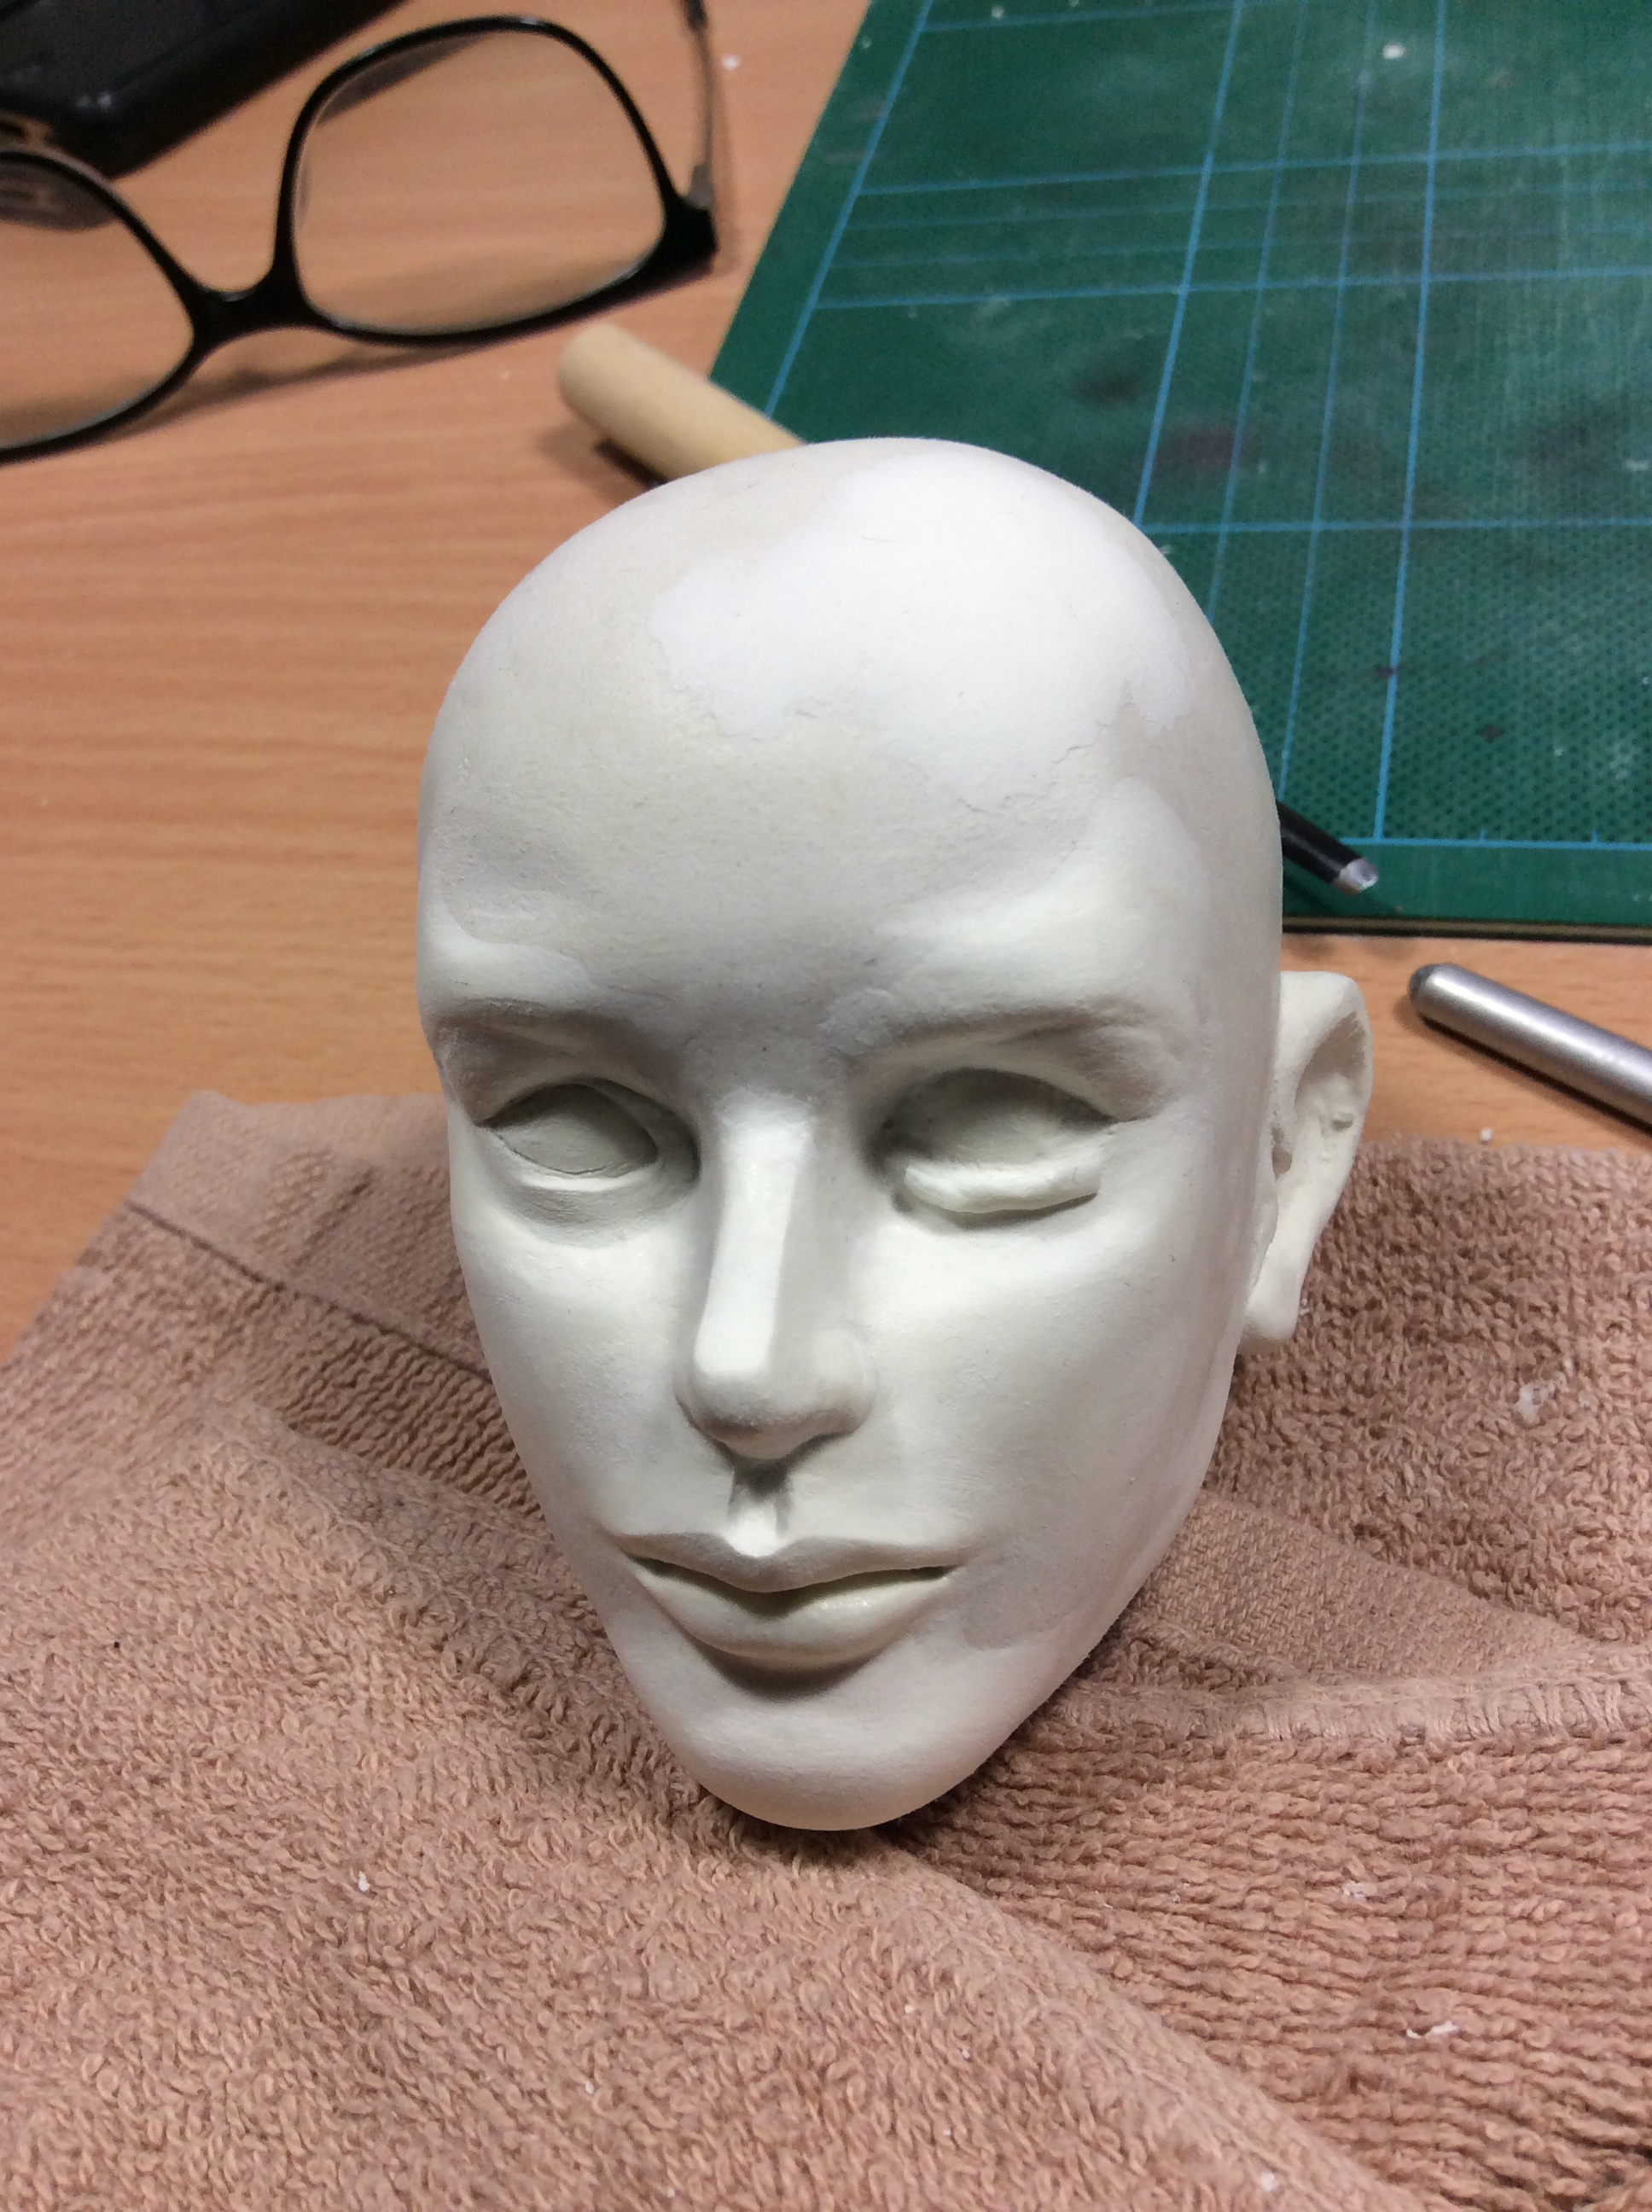 jemse---my-first-doll-head-making-progress-diary-part-3_32293340601_o